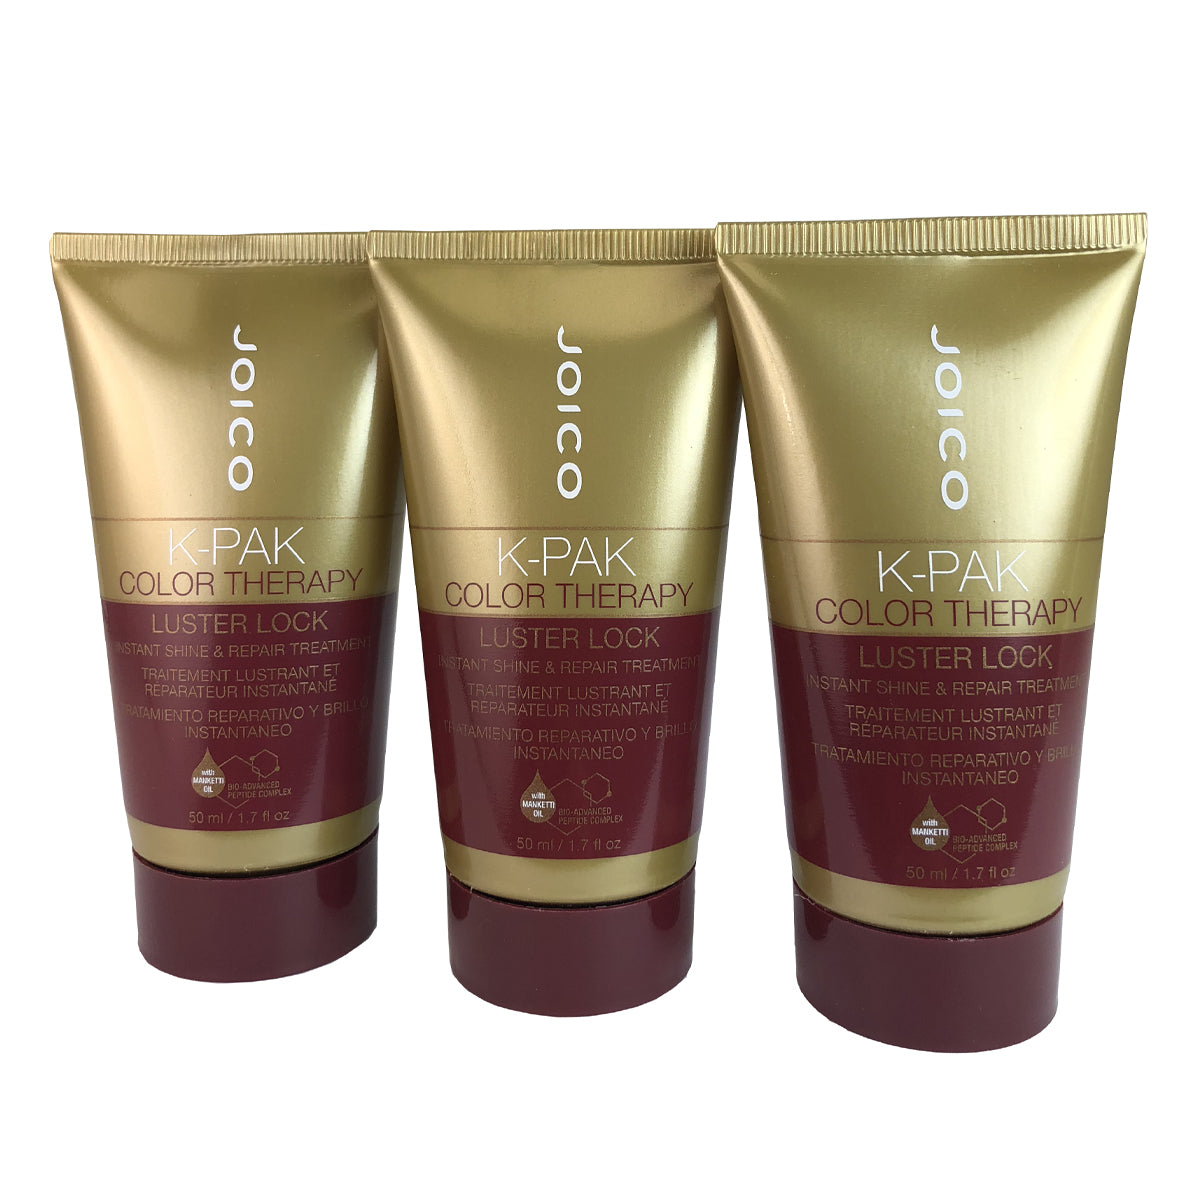 Joico K-Pak Hair Color Therapy Luster Lock - Travel Size - 3 Pieces 1.7 oz each